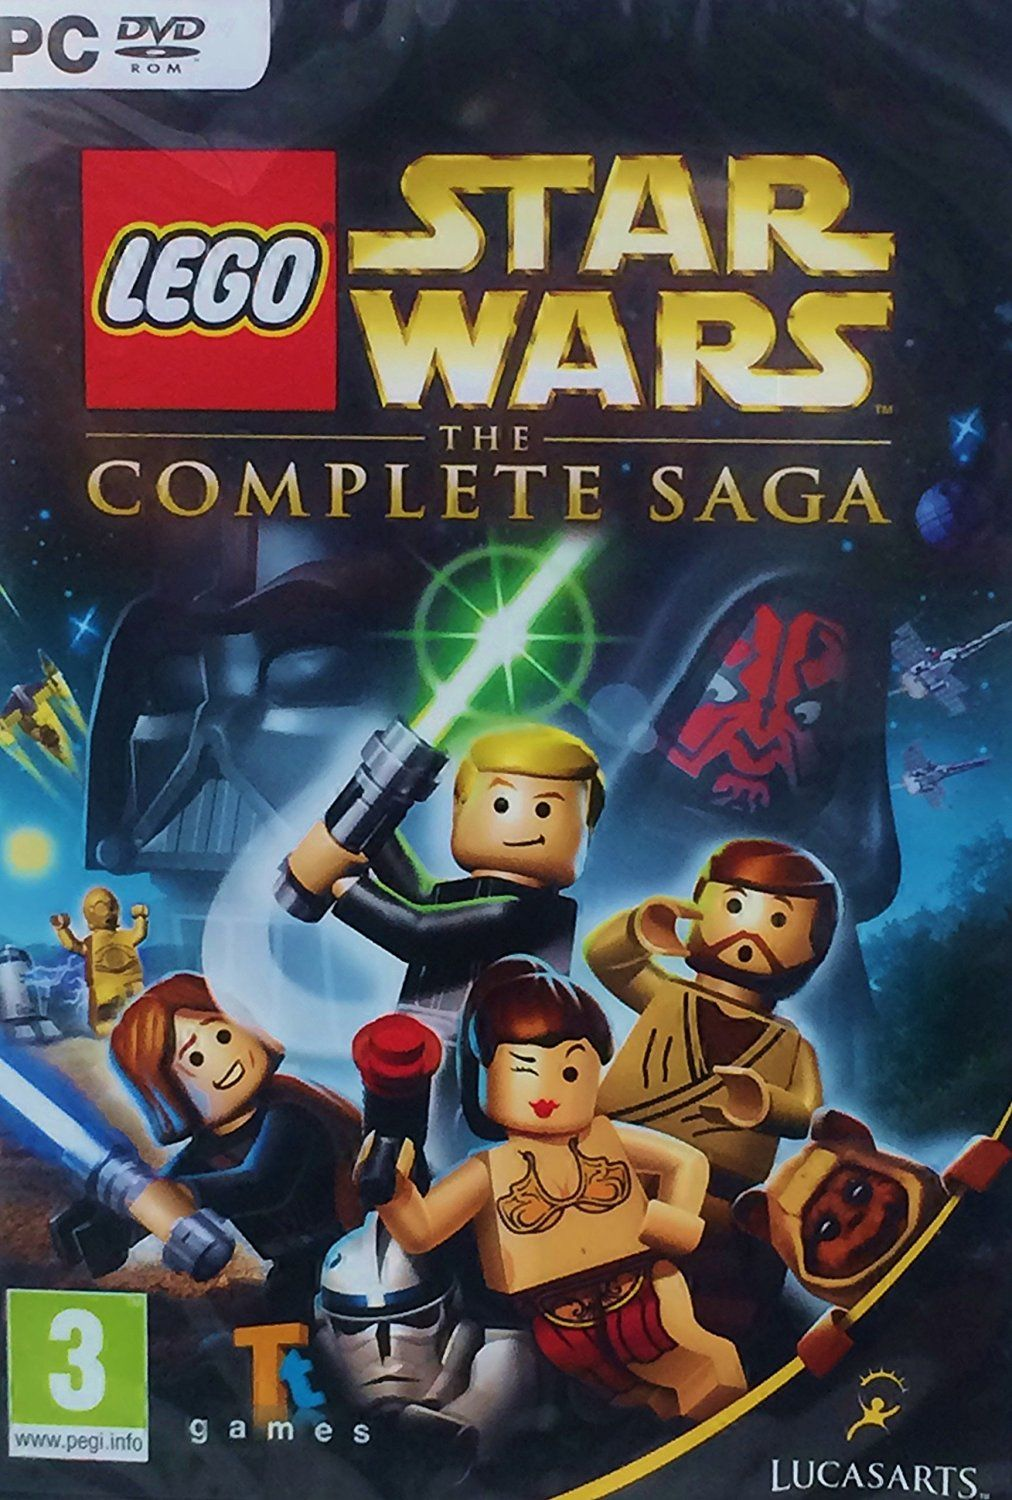 Lego Star Wars The Complete Saga Pc Dvd Amazoncouk Pc Video